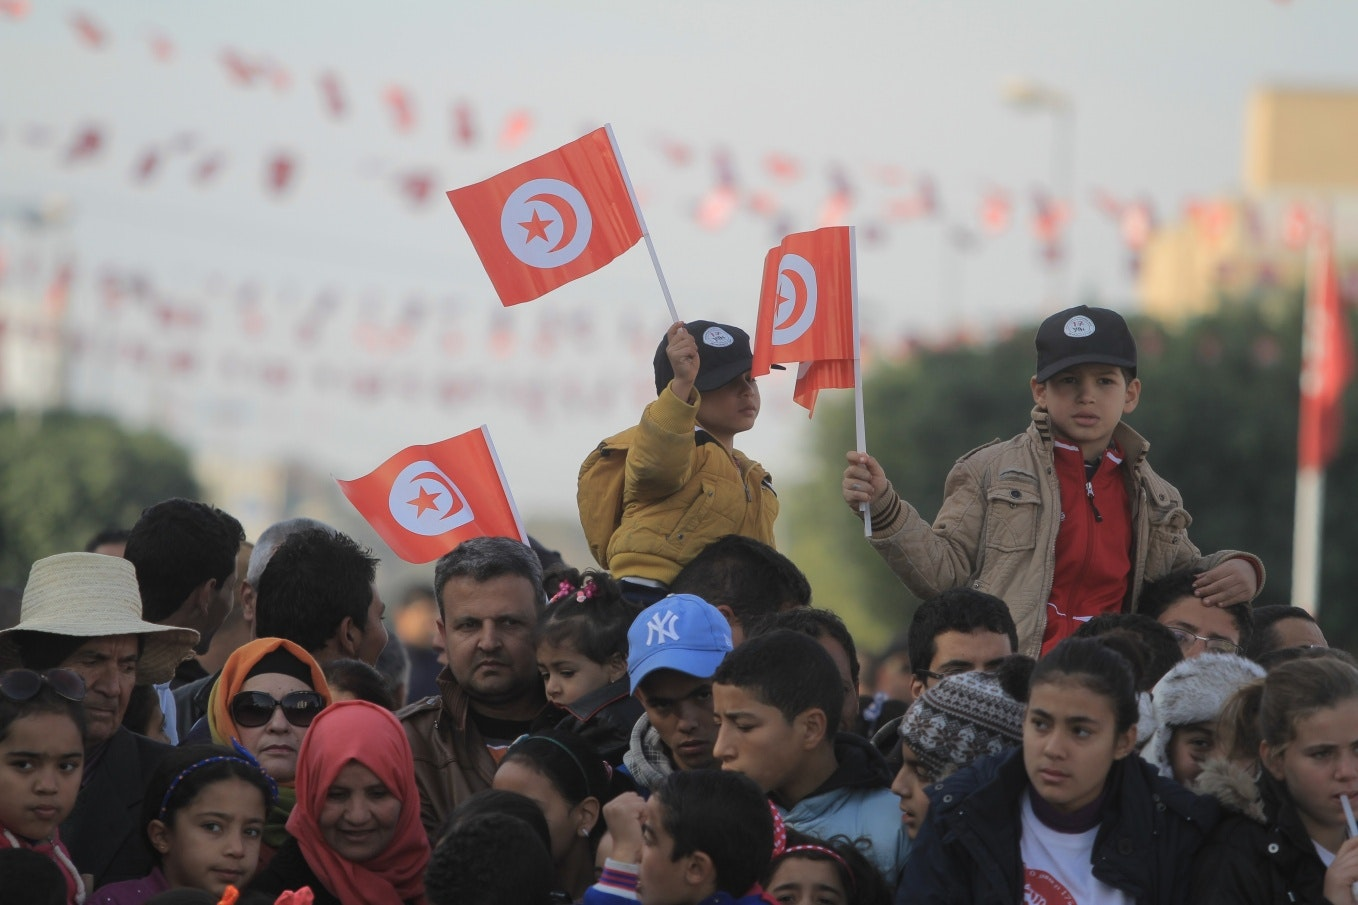 Boys waving flags in a crowd